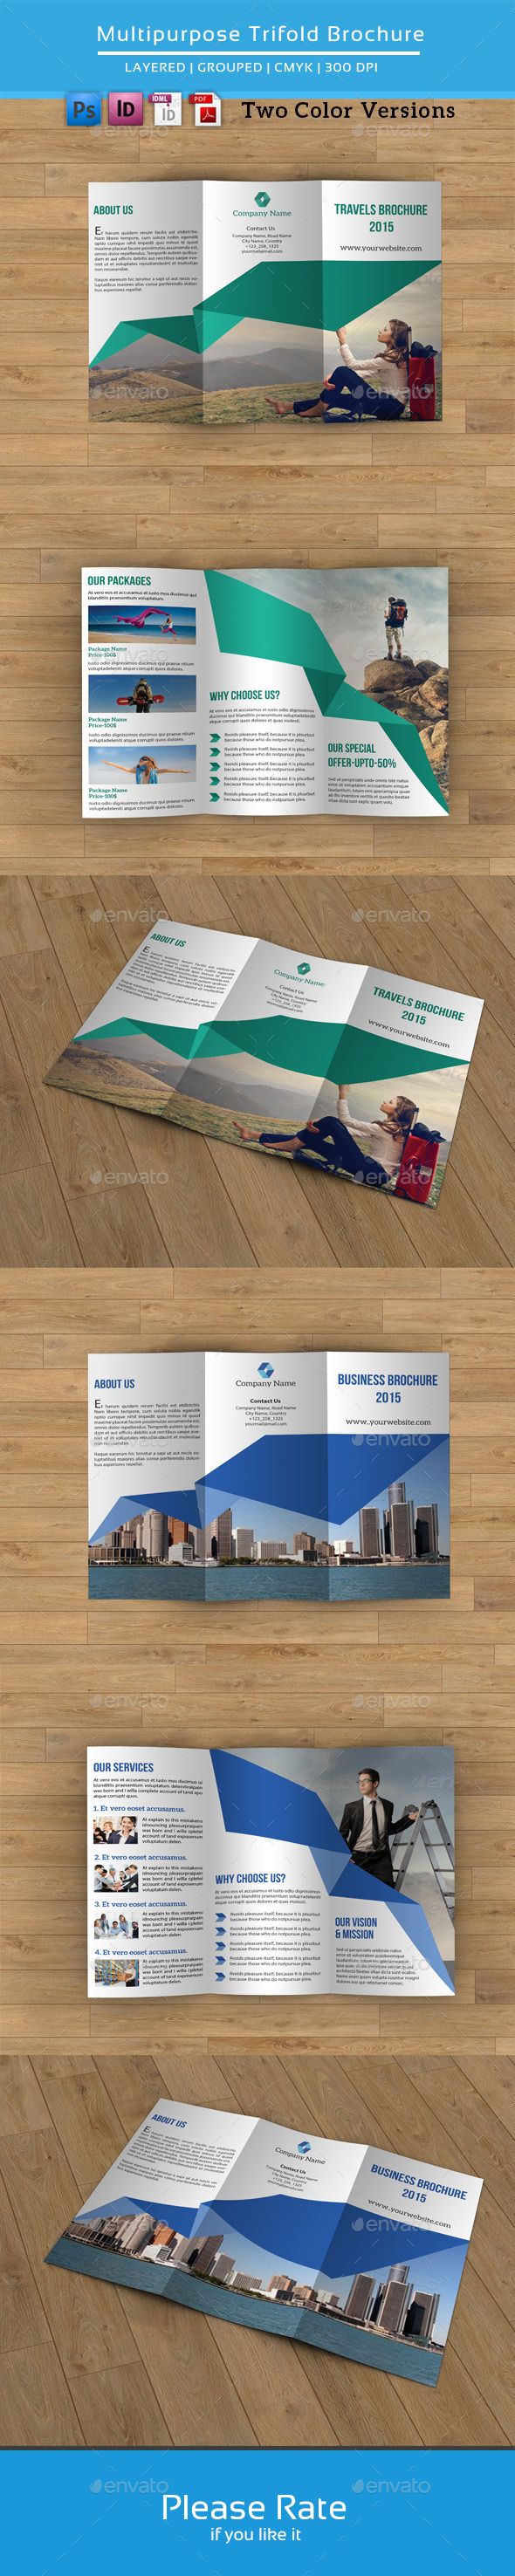 GraphicRiver Multipurpose Business Trifold-V64 8790111